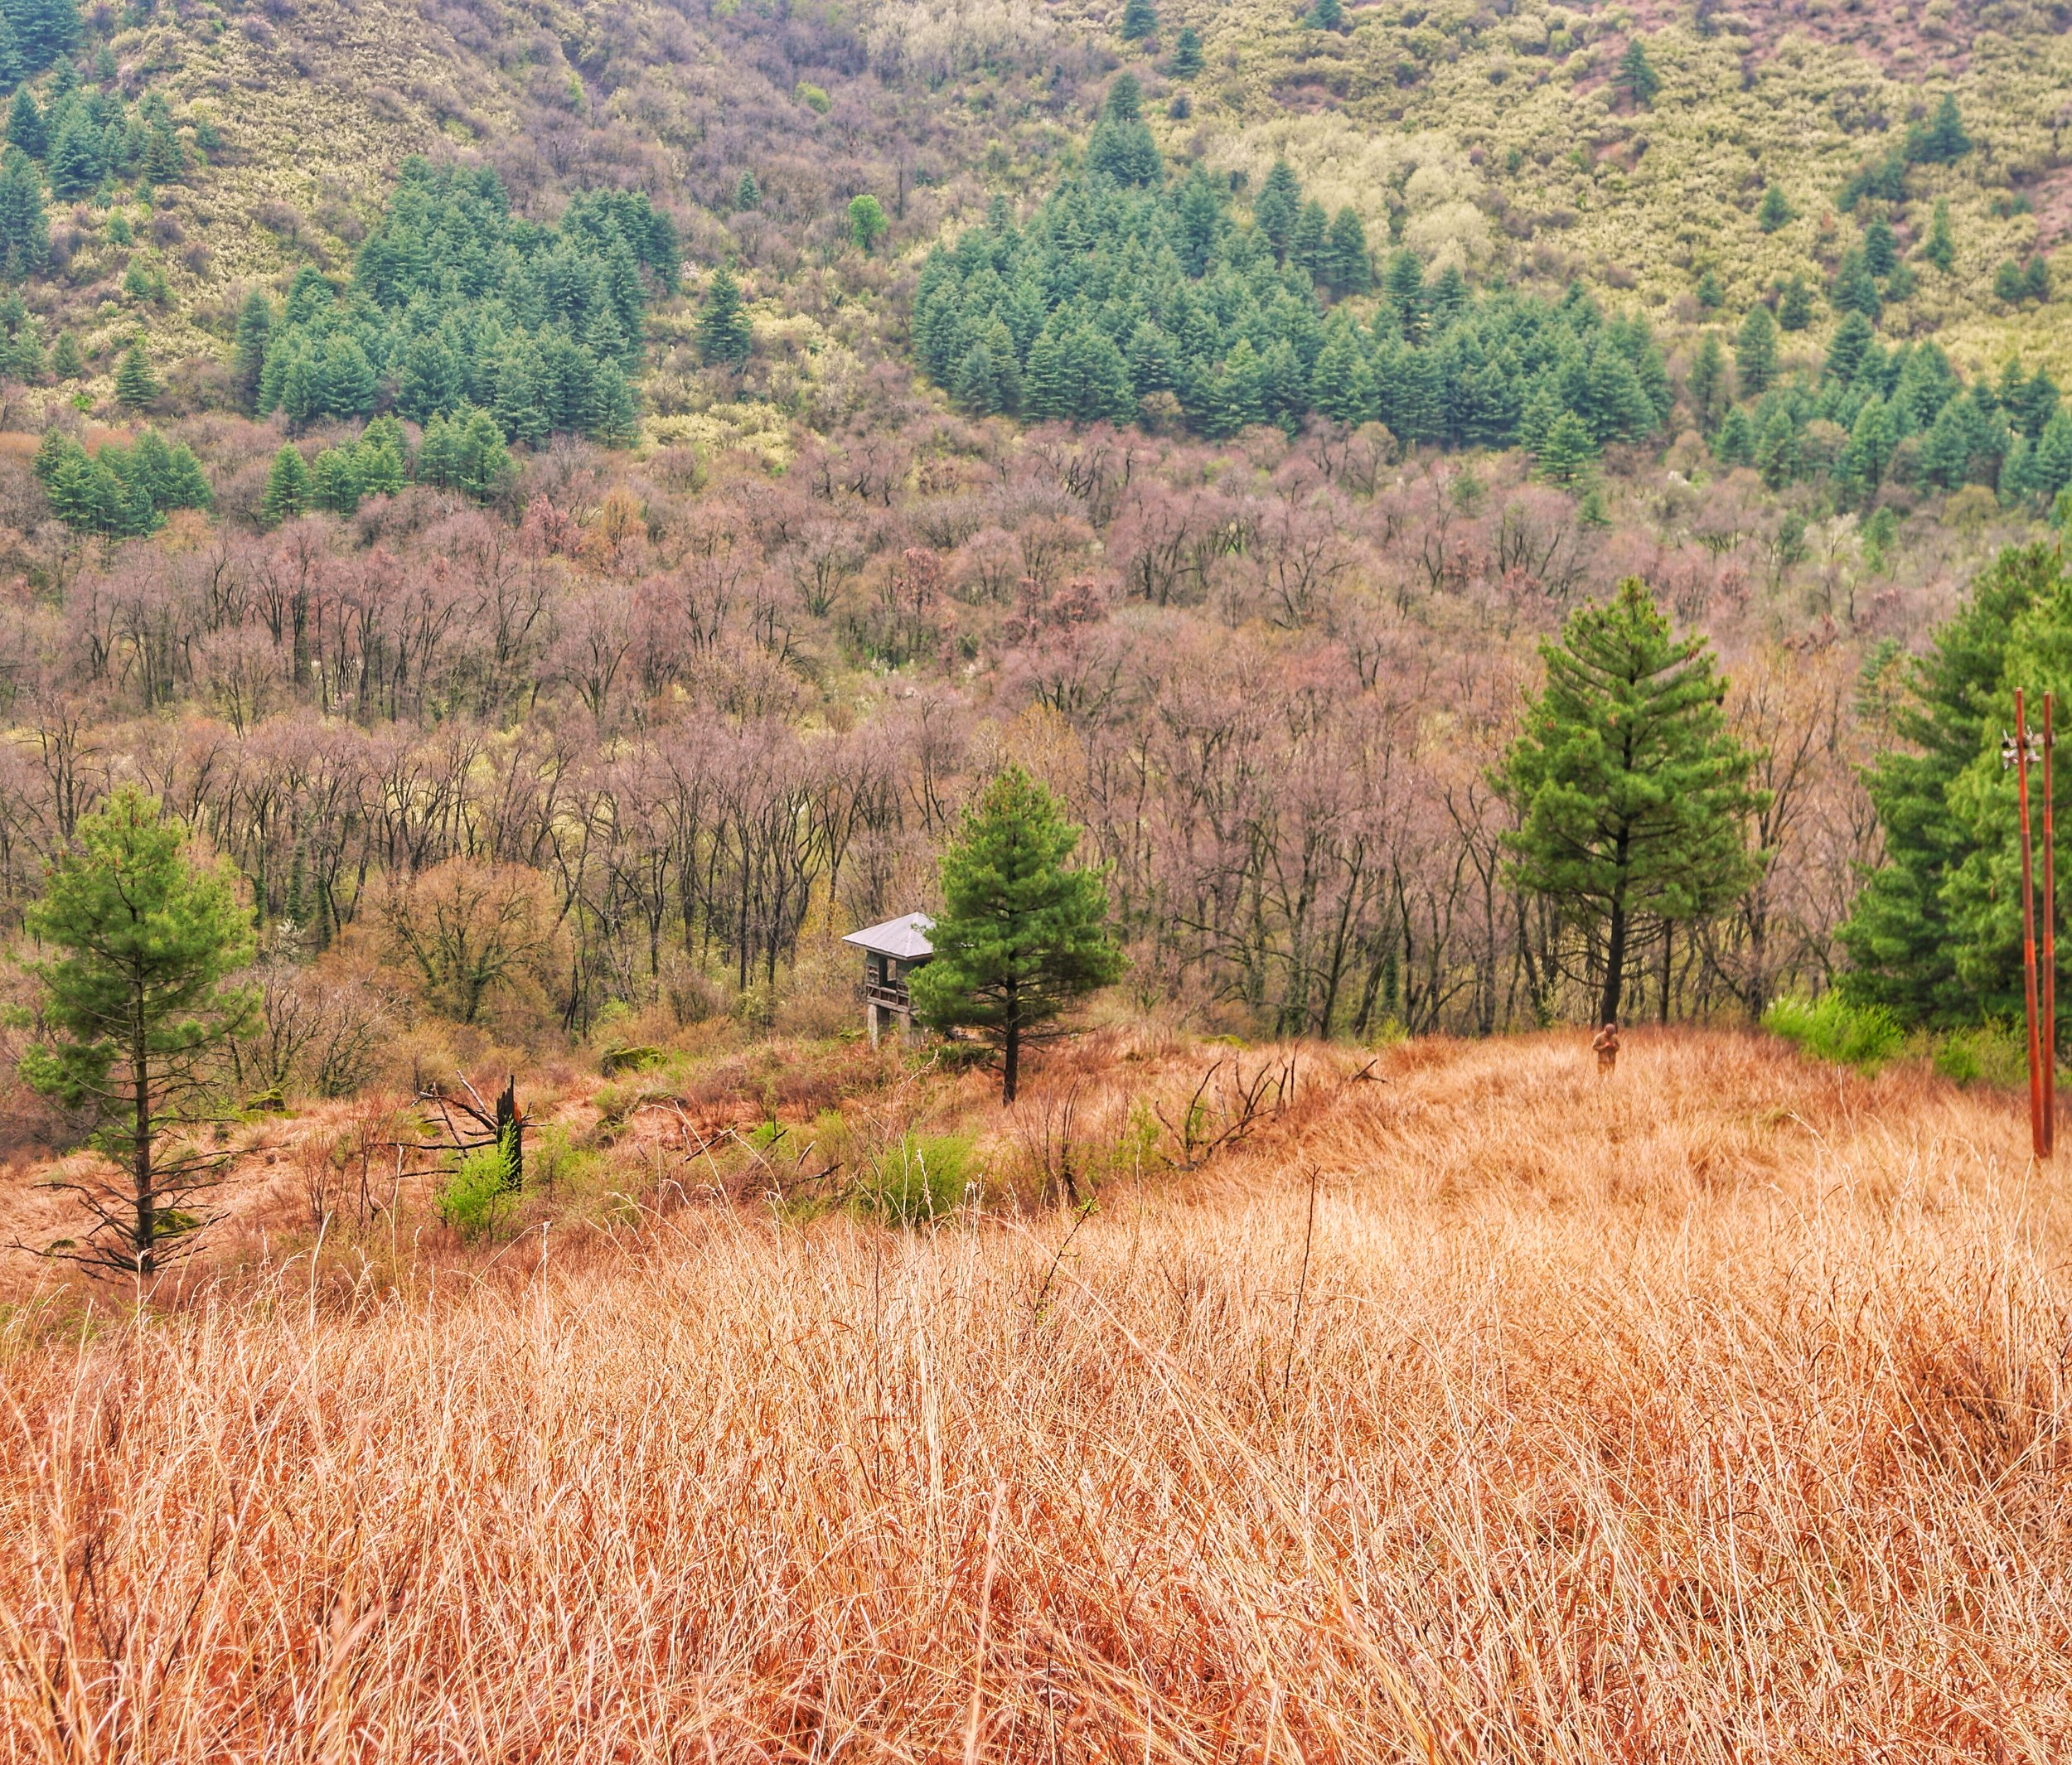 The Rangers lookout hut at the Dachigam National Park